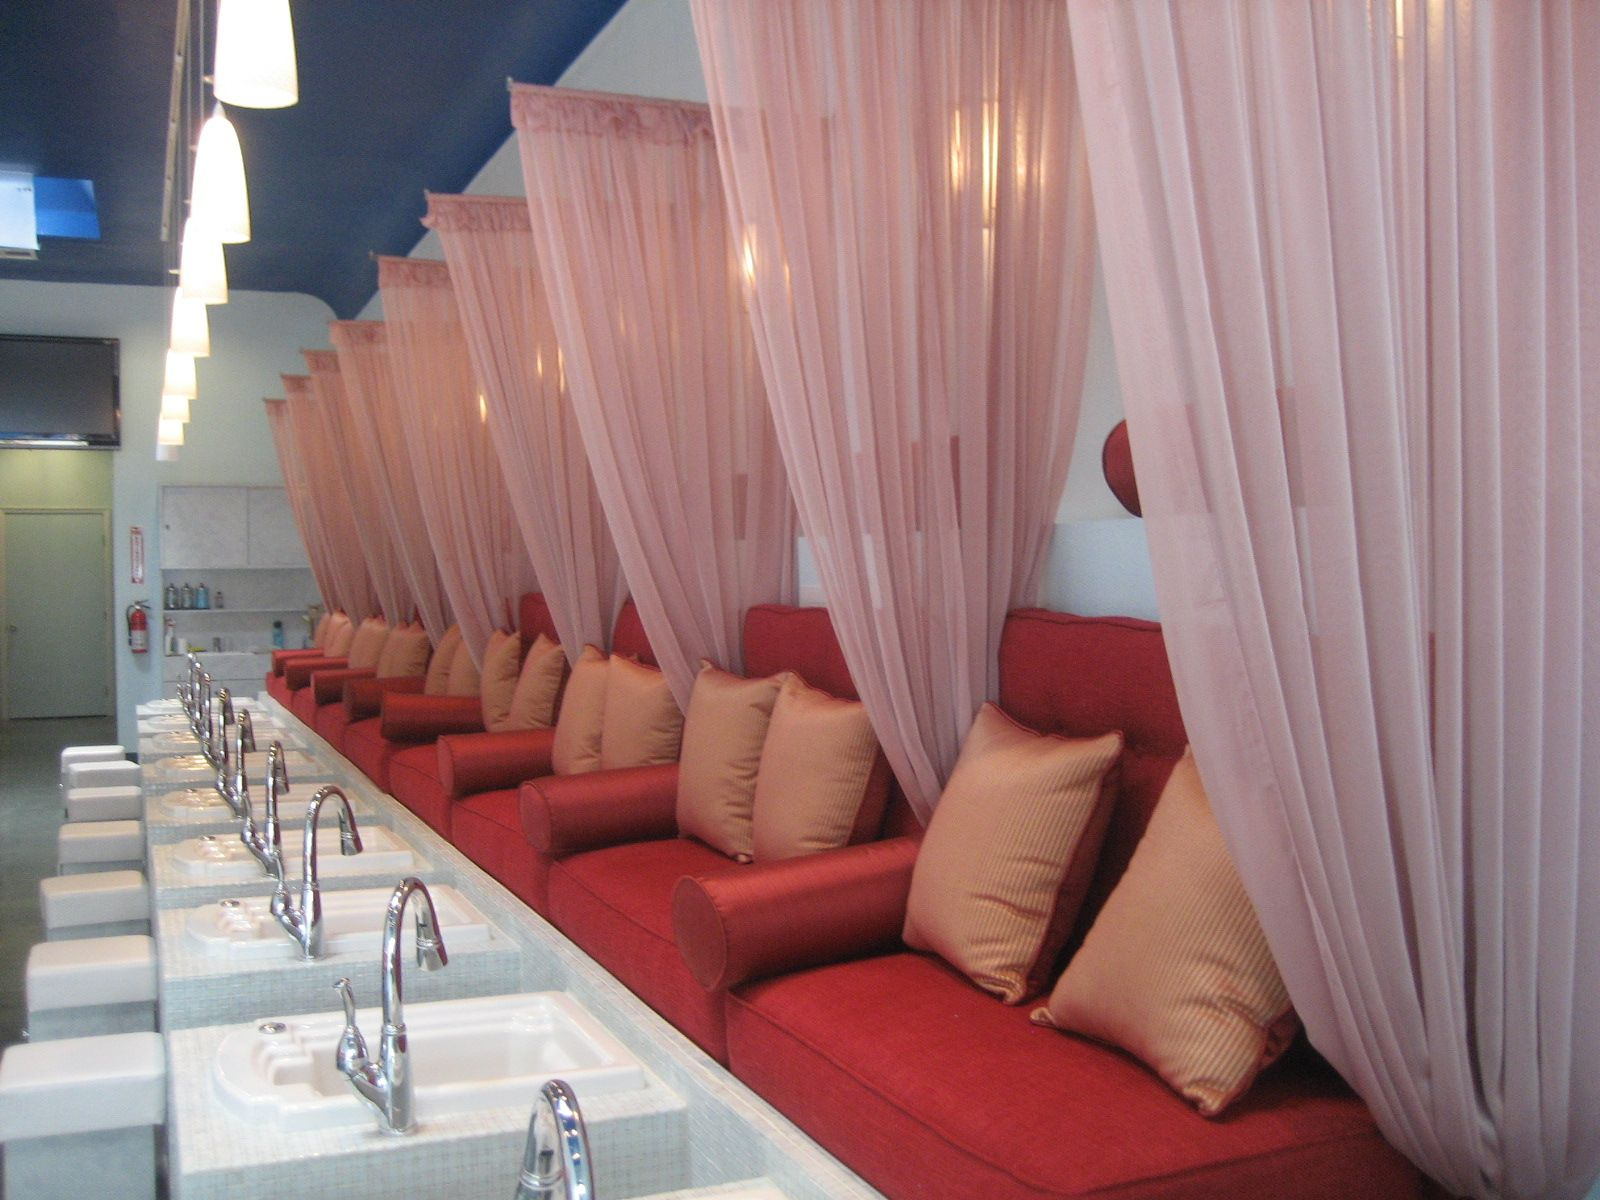 7 Cheap Pedi Places Trusted by LA Fashion Folks